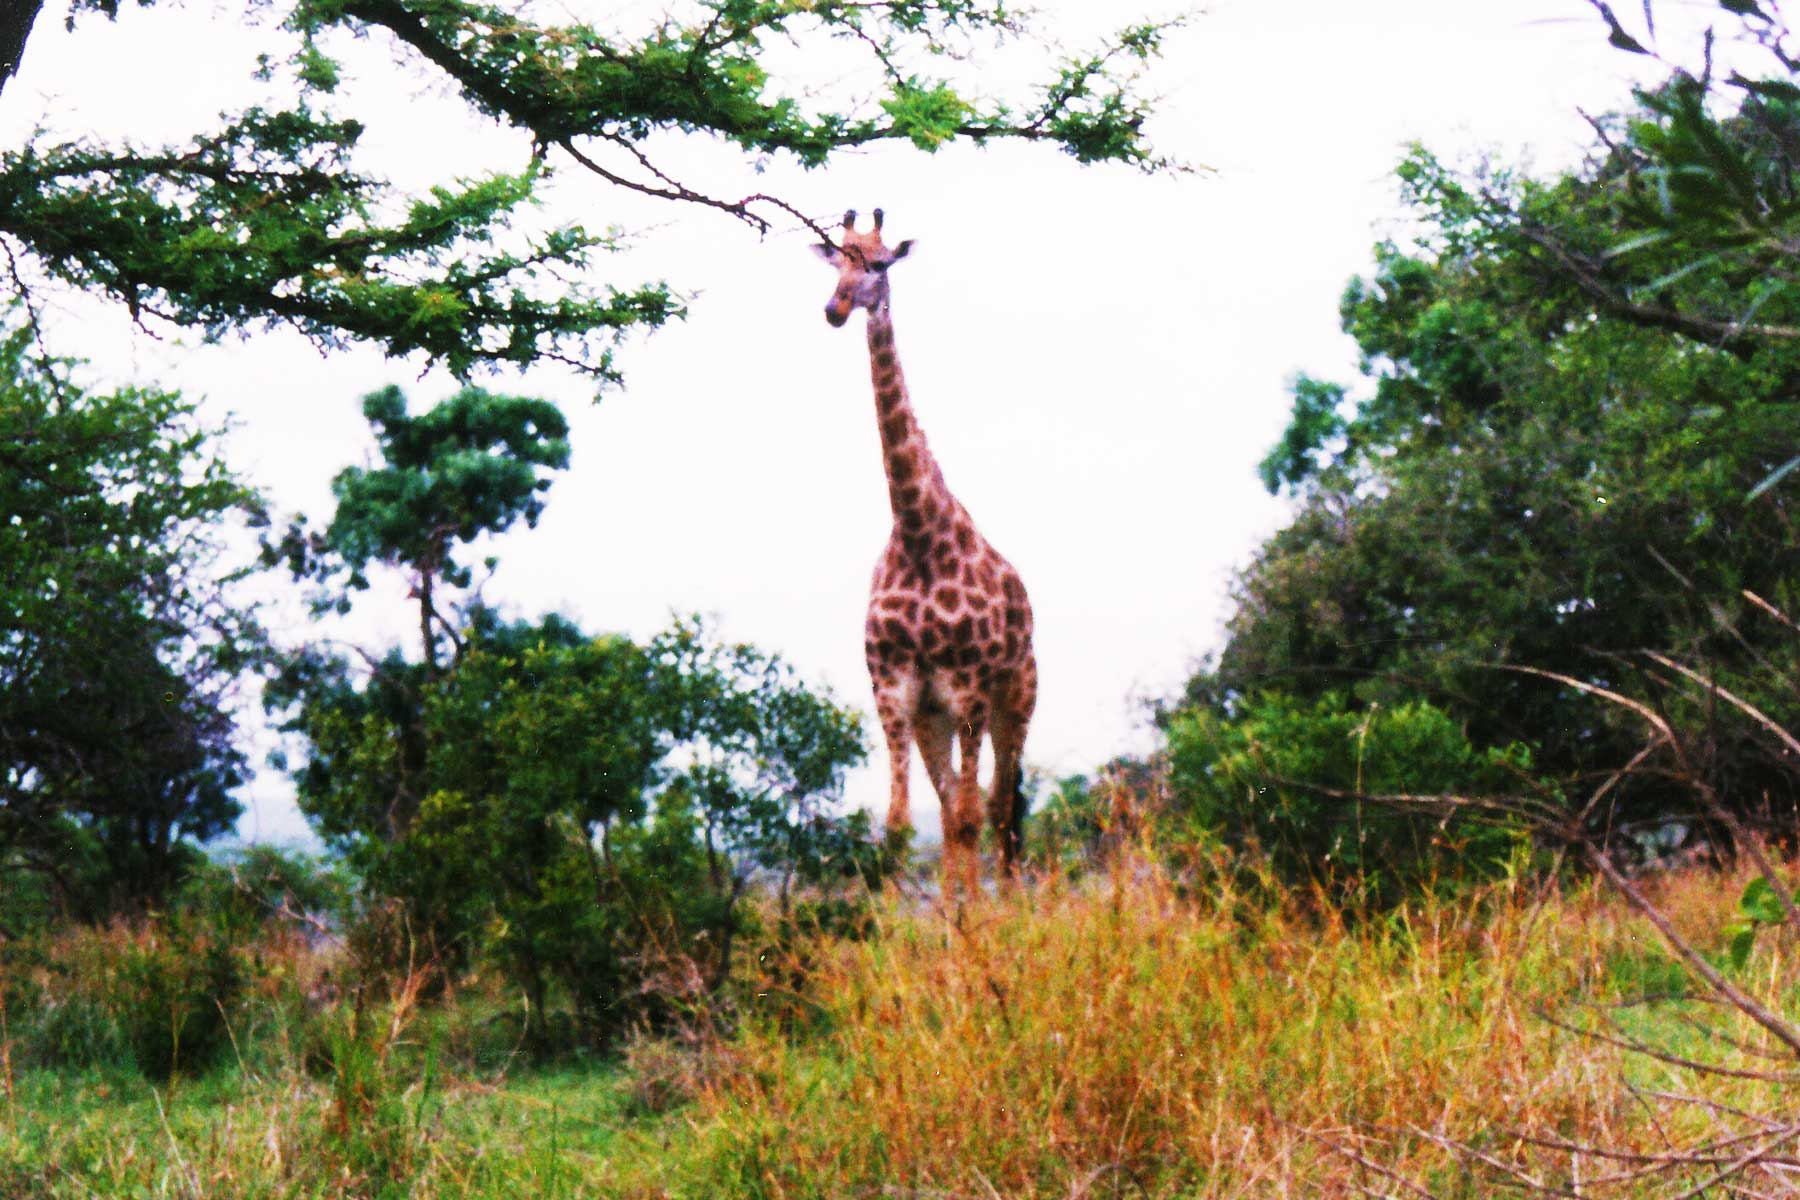 Giraffe - Hluhluwe-Umfolozi Game Reserve - Steven Andrew Martin - South Africa Photo Journal - international education online